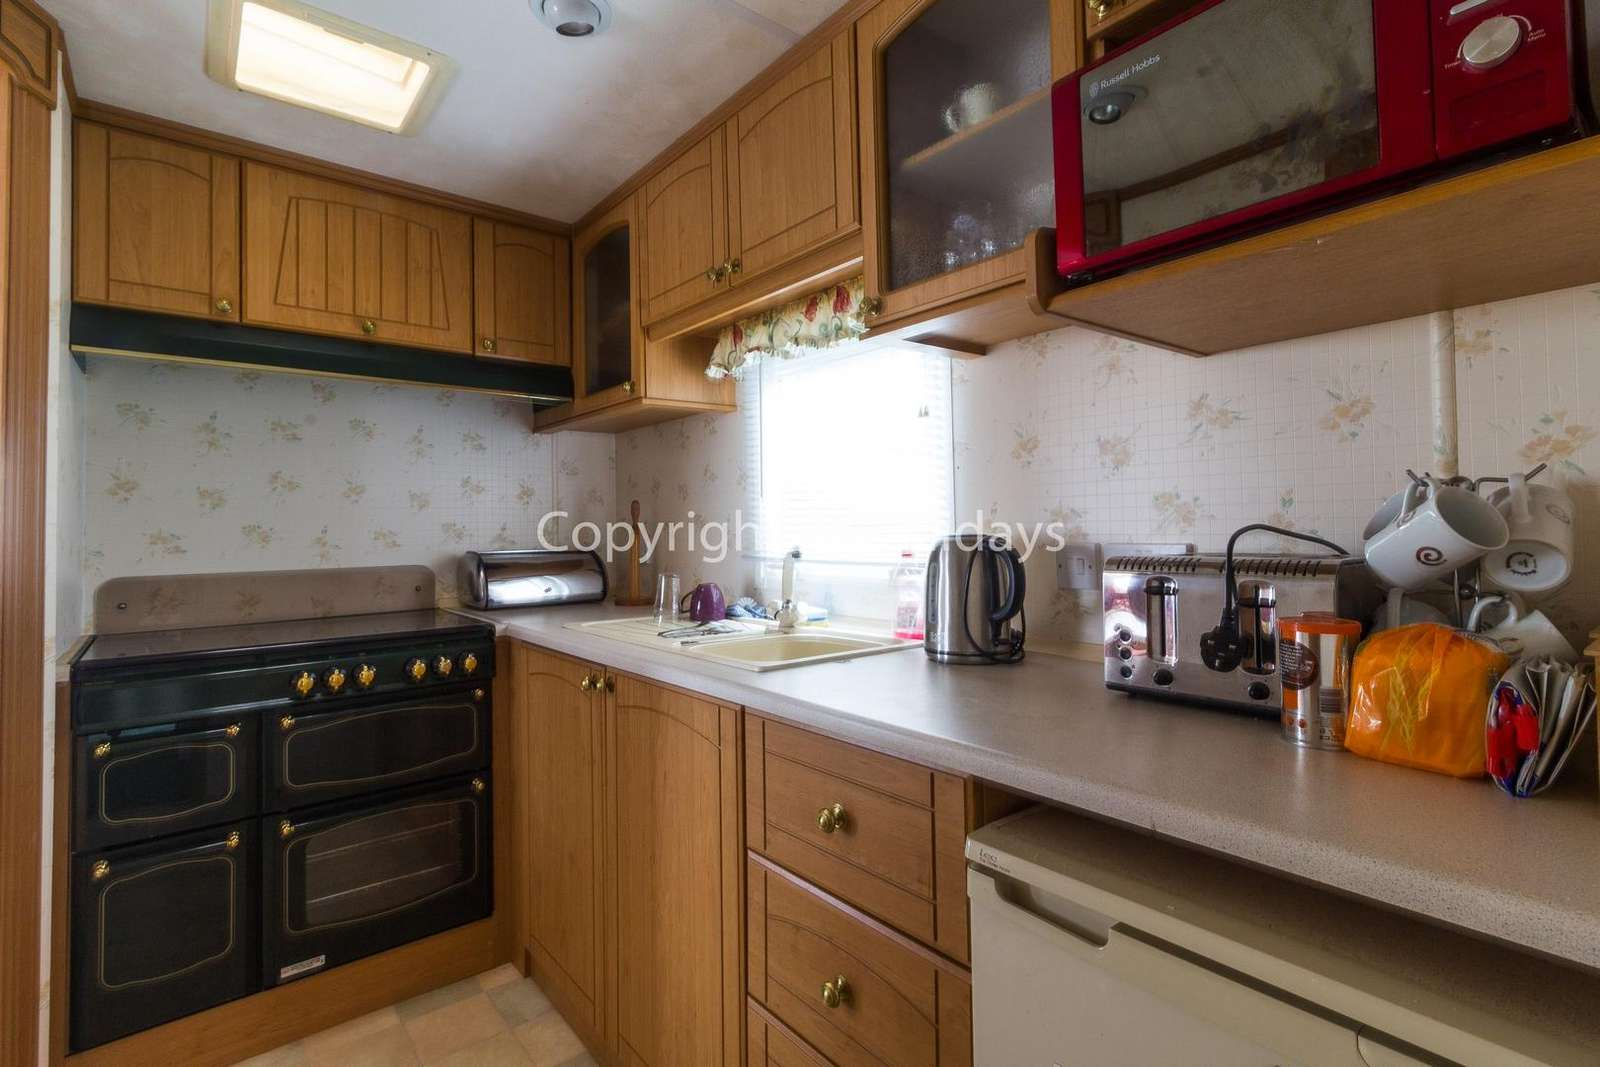 A fully equipped kitchen, perfect for self catering holidays!